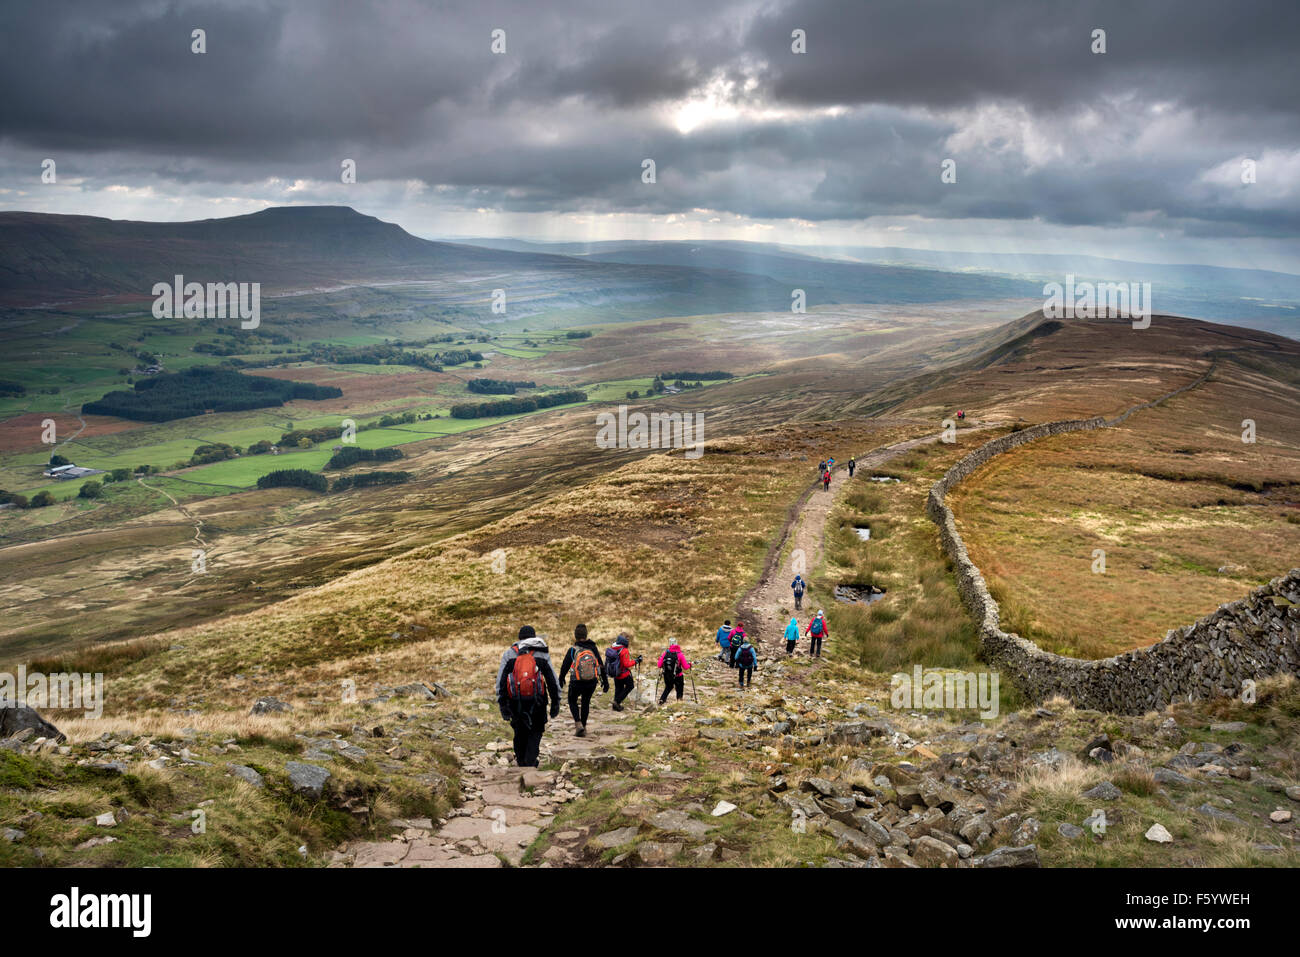 Walkers descend the path from Whernside, in the Yorkshire Dales National Park, with a view of Ingleborough hill - Stock Image